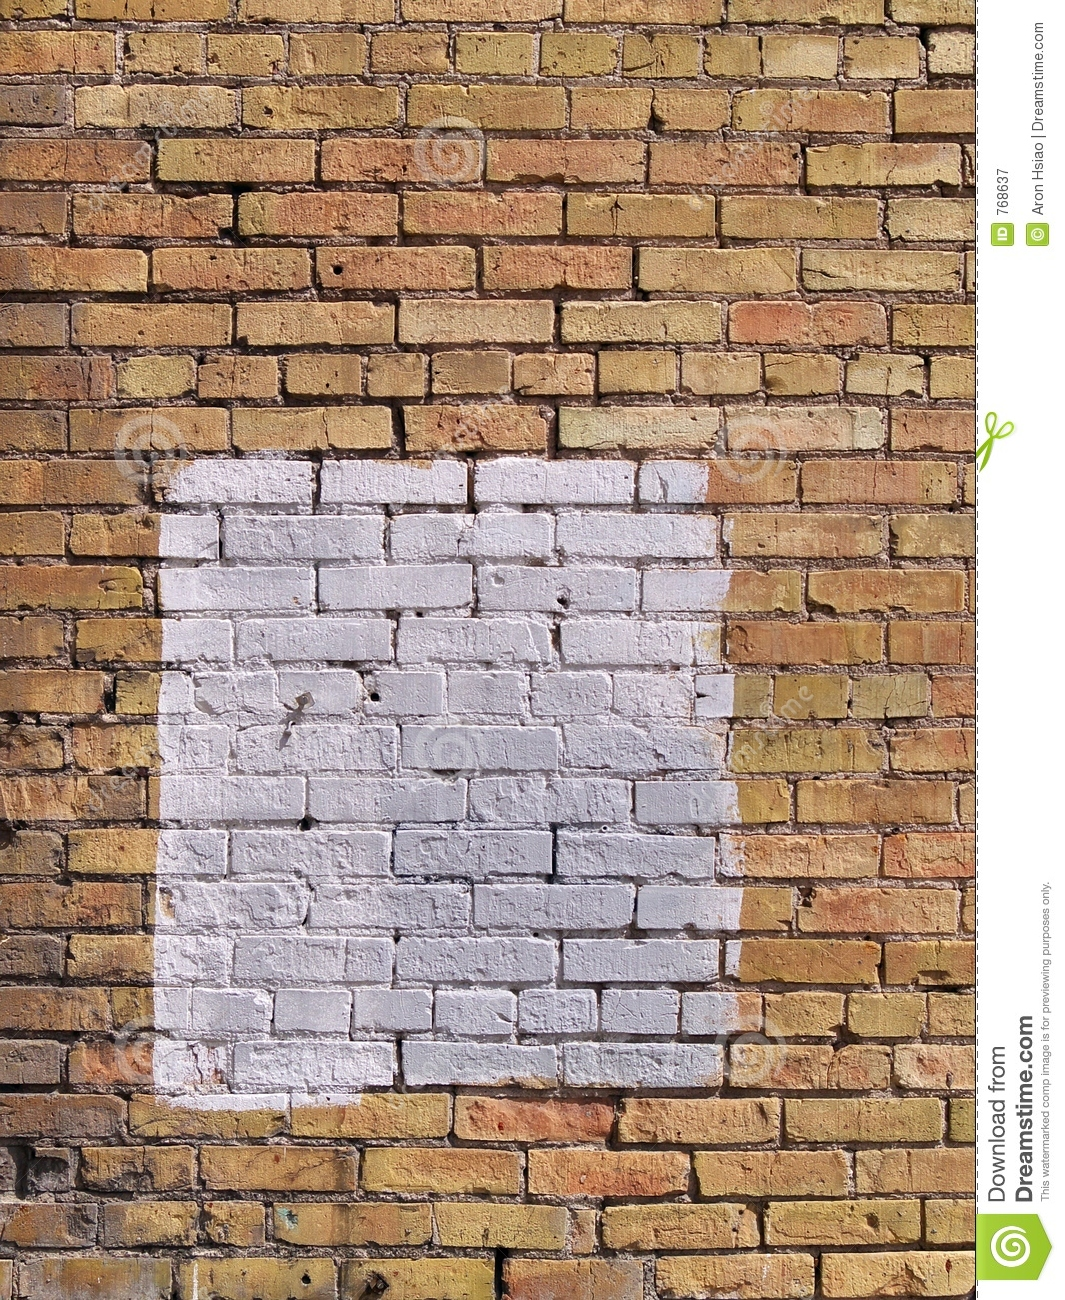 Square patch of white paint on brick wall royalty free stock photography image 768637 - Resource com verven ...